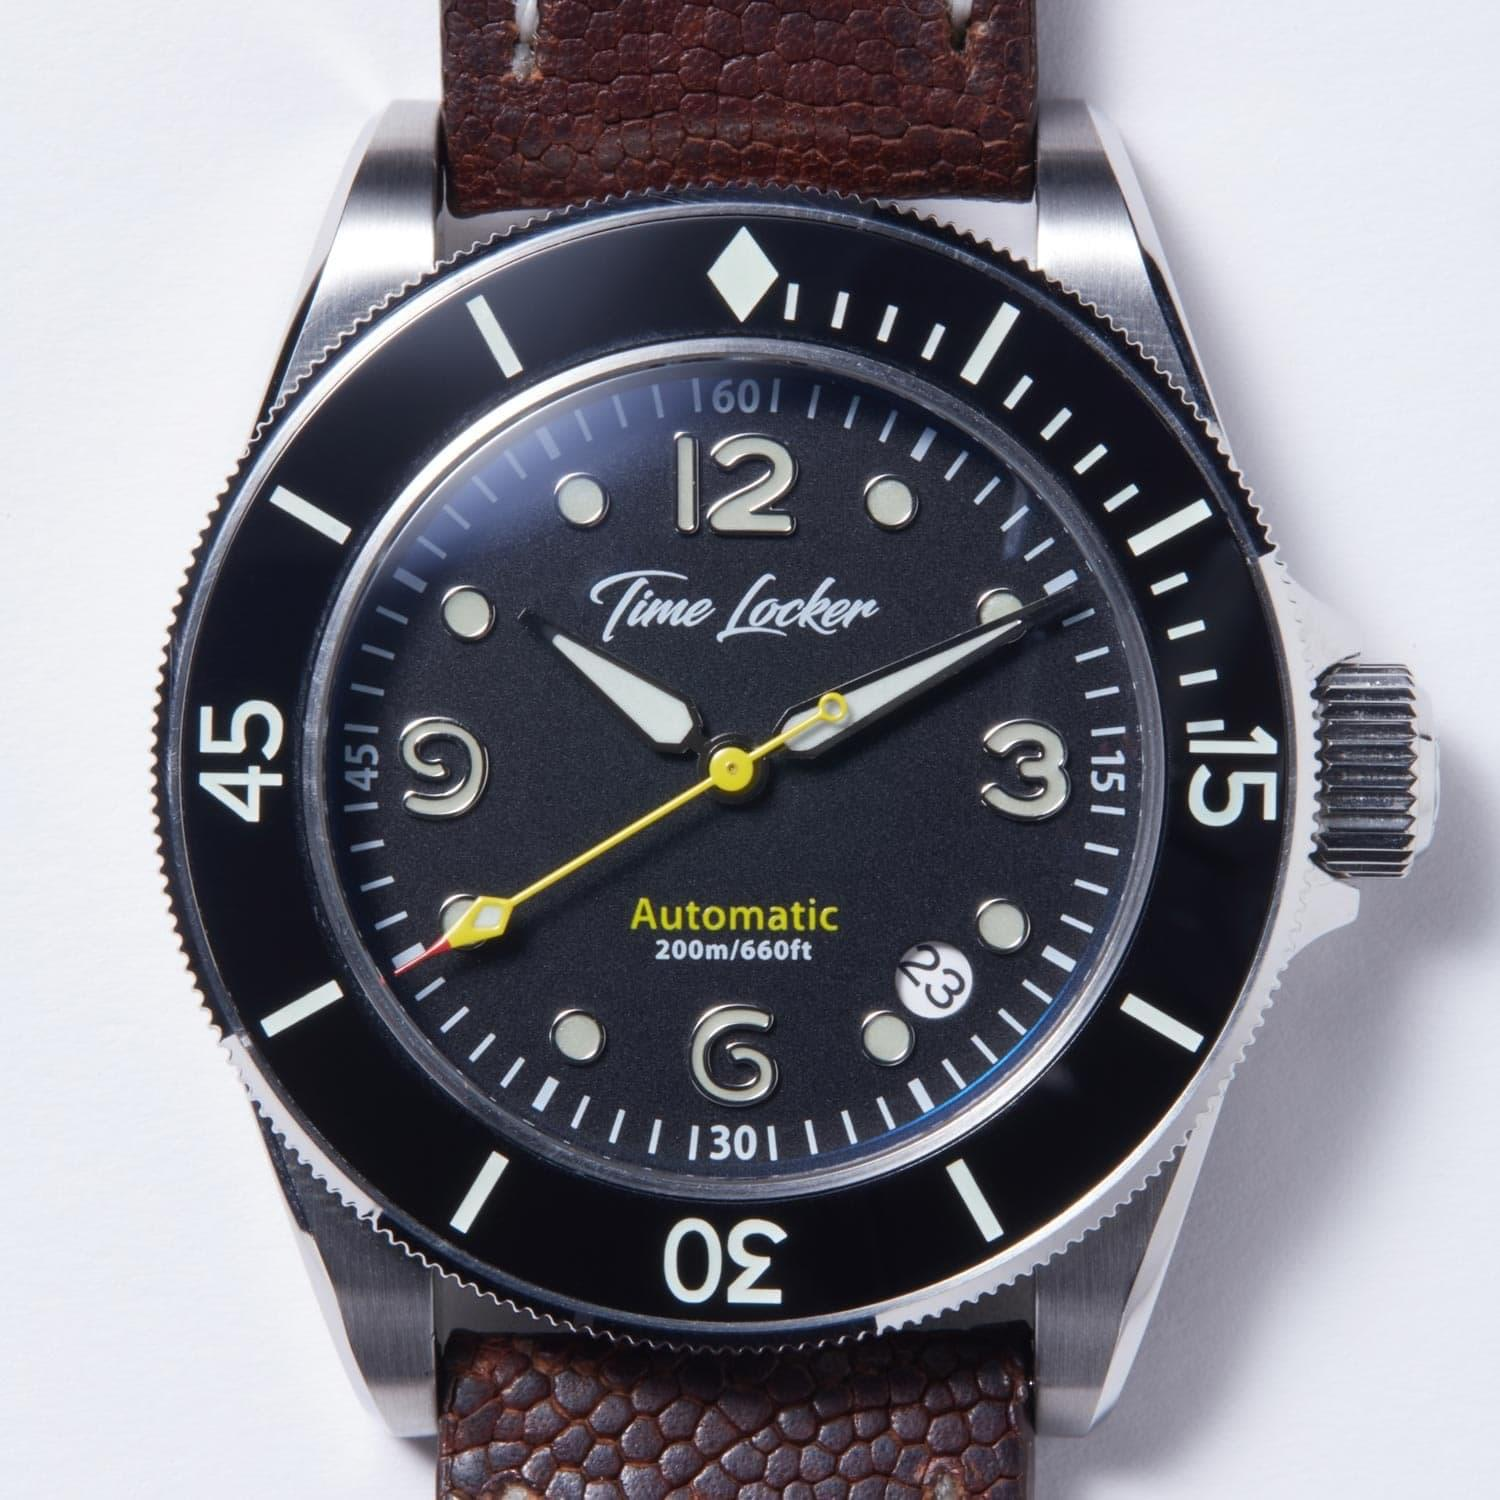 Diving watch lume